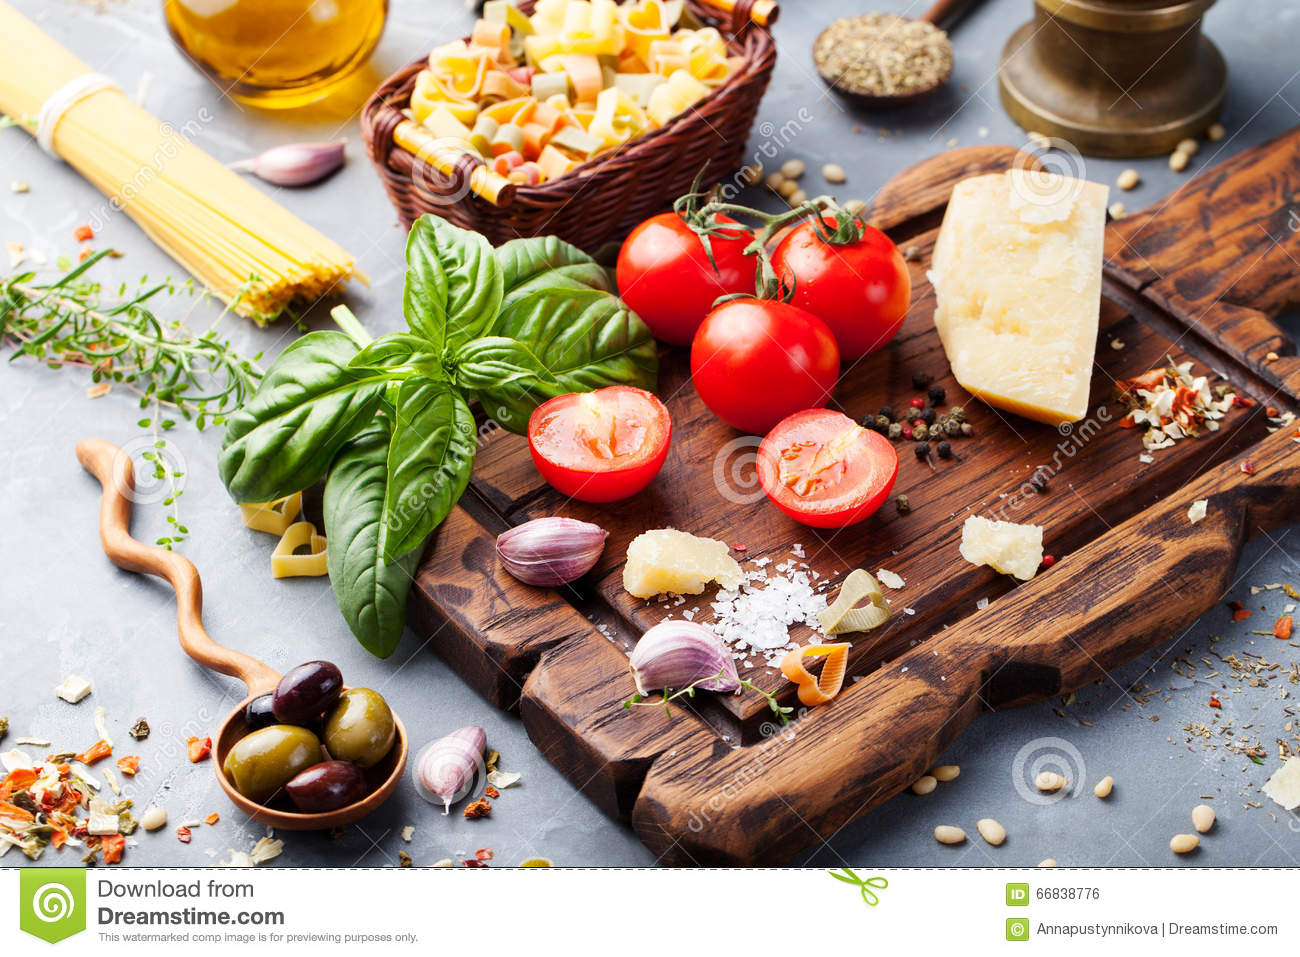 What Is Your Orientation To Natural Foods